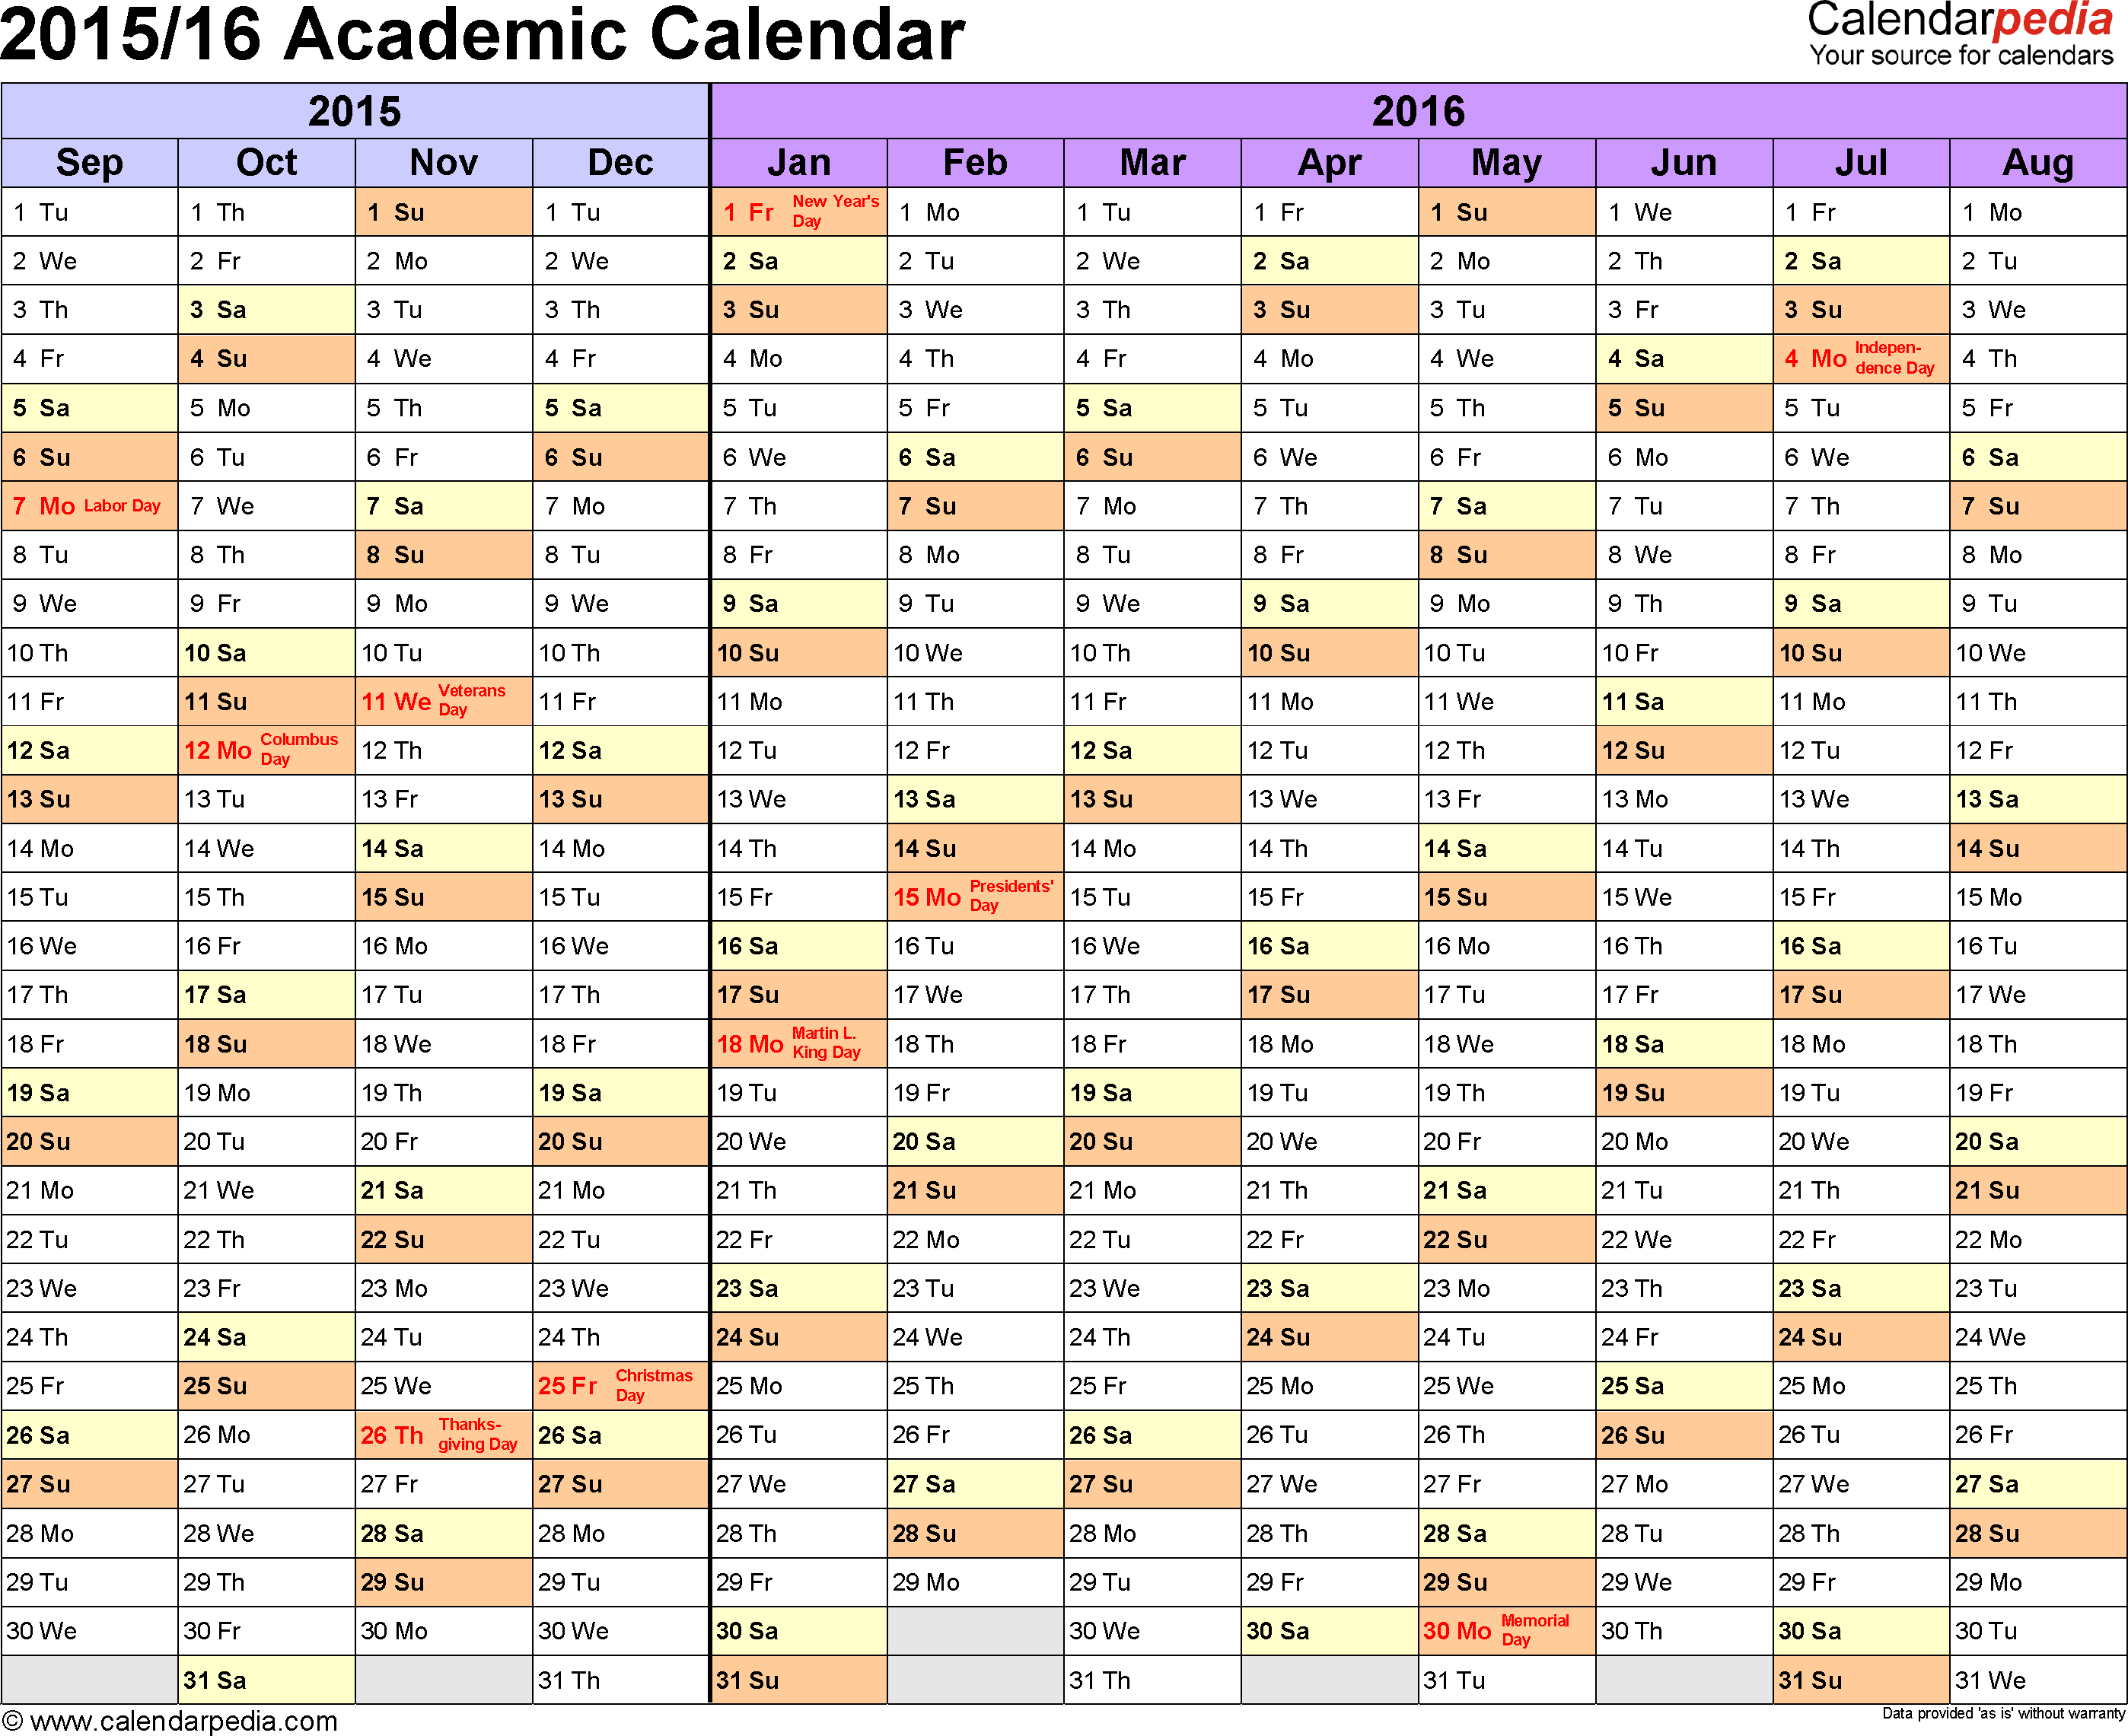 Template 1: Academic calendar 2015/16, for Microsoft Word (.docx file), landscape, 1 page